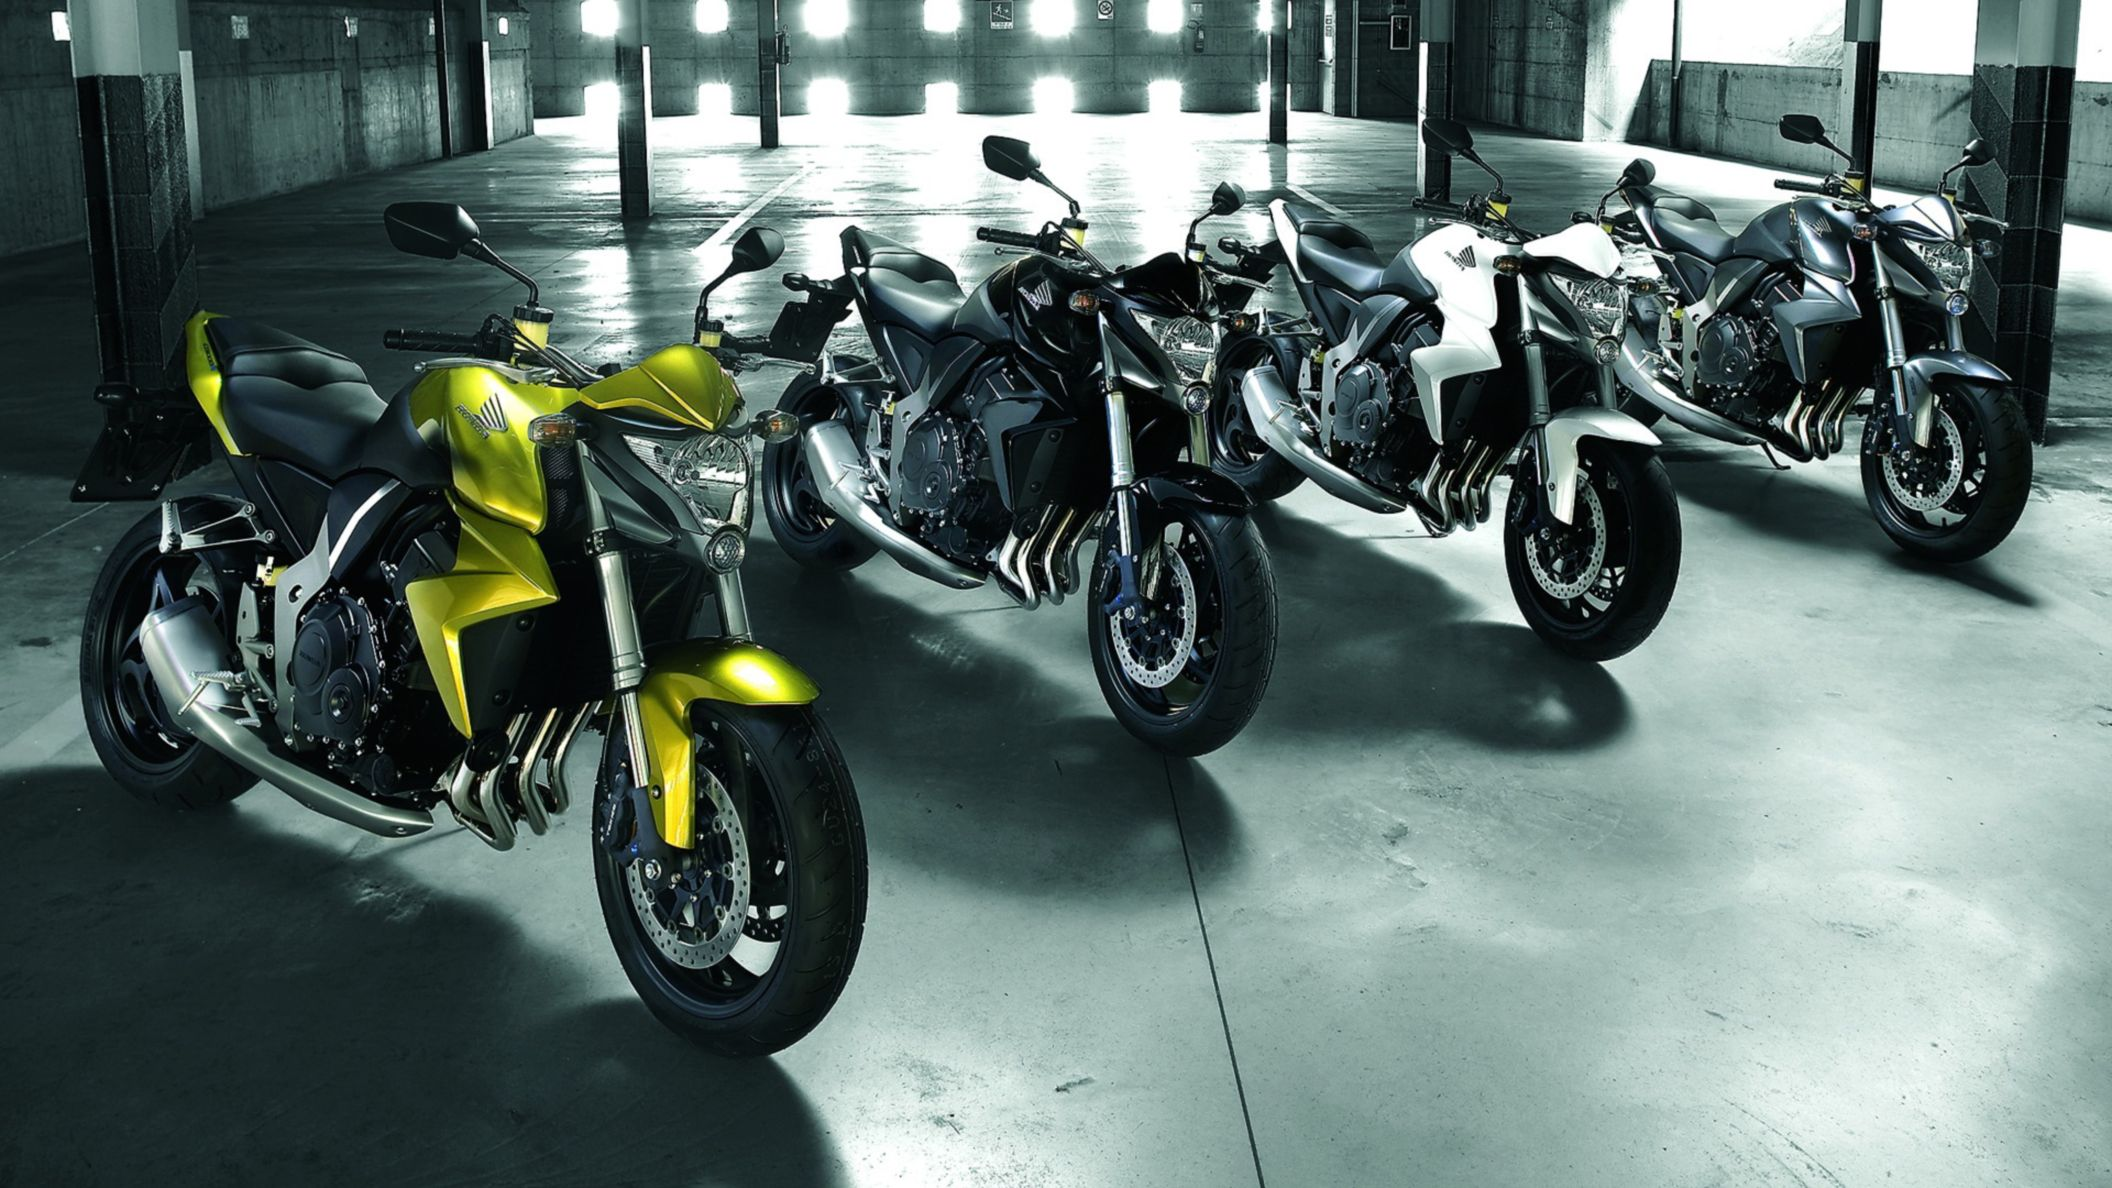 Download free HD Honda Bikes HD Wallpaper, image